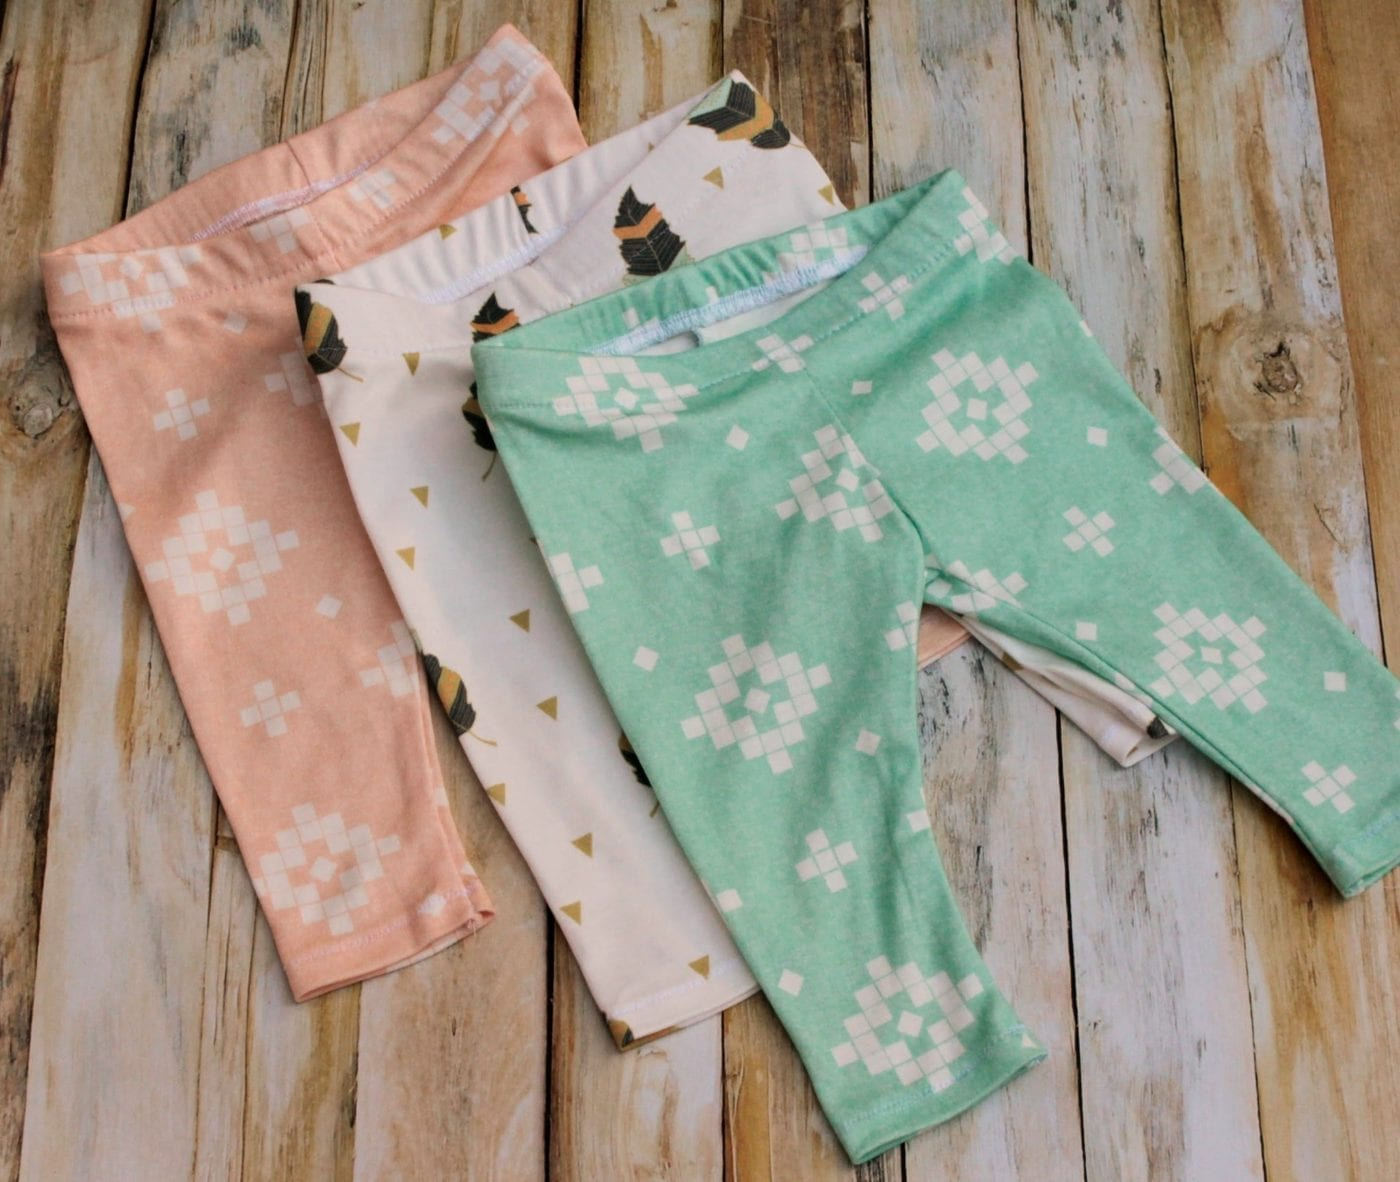 diy-baby-leggings-pattern. Free-sewing-pattern-for baby shower gifts. Easy Baby DIY for any occasion made by Coral and co.